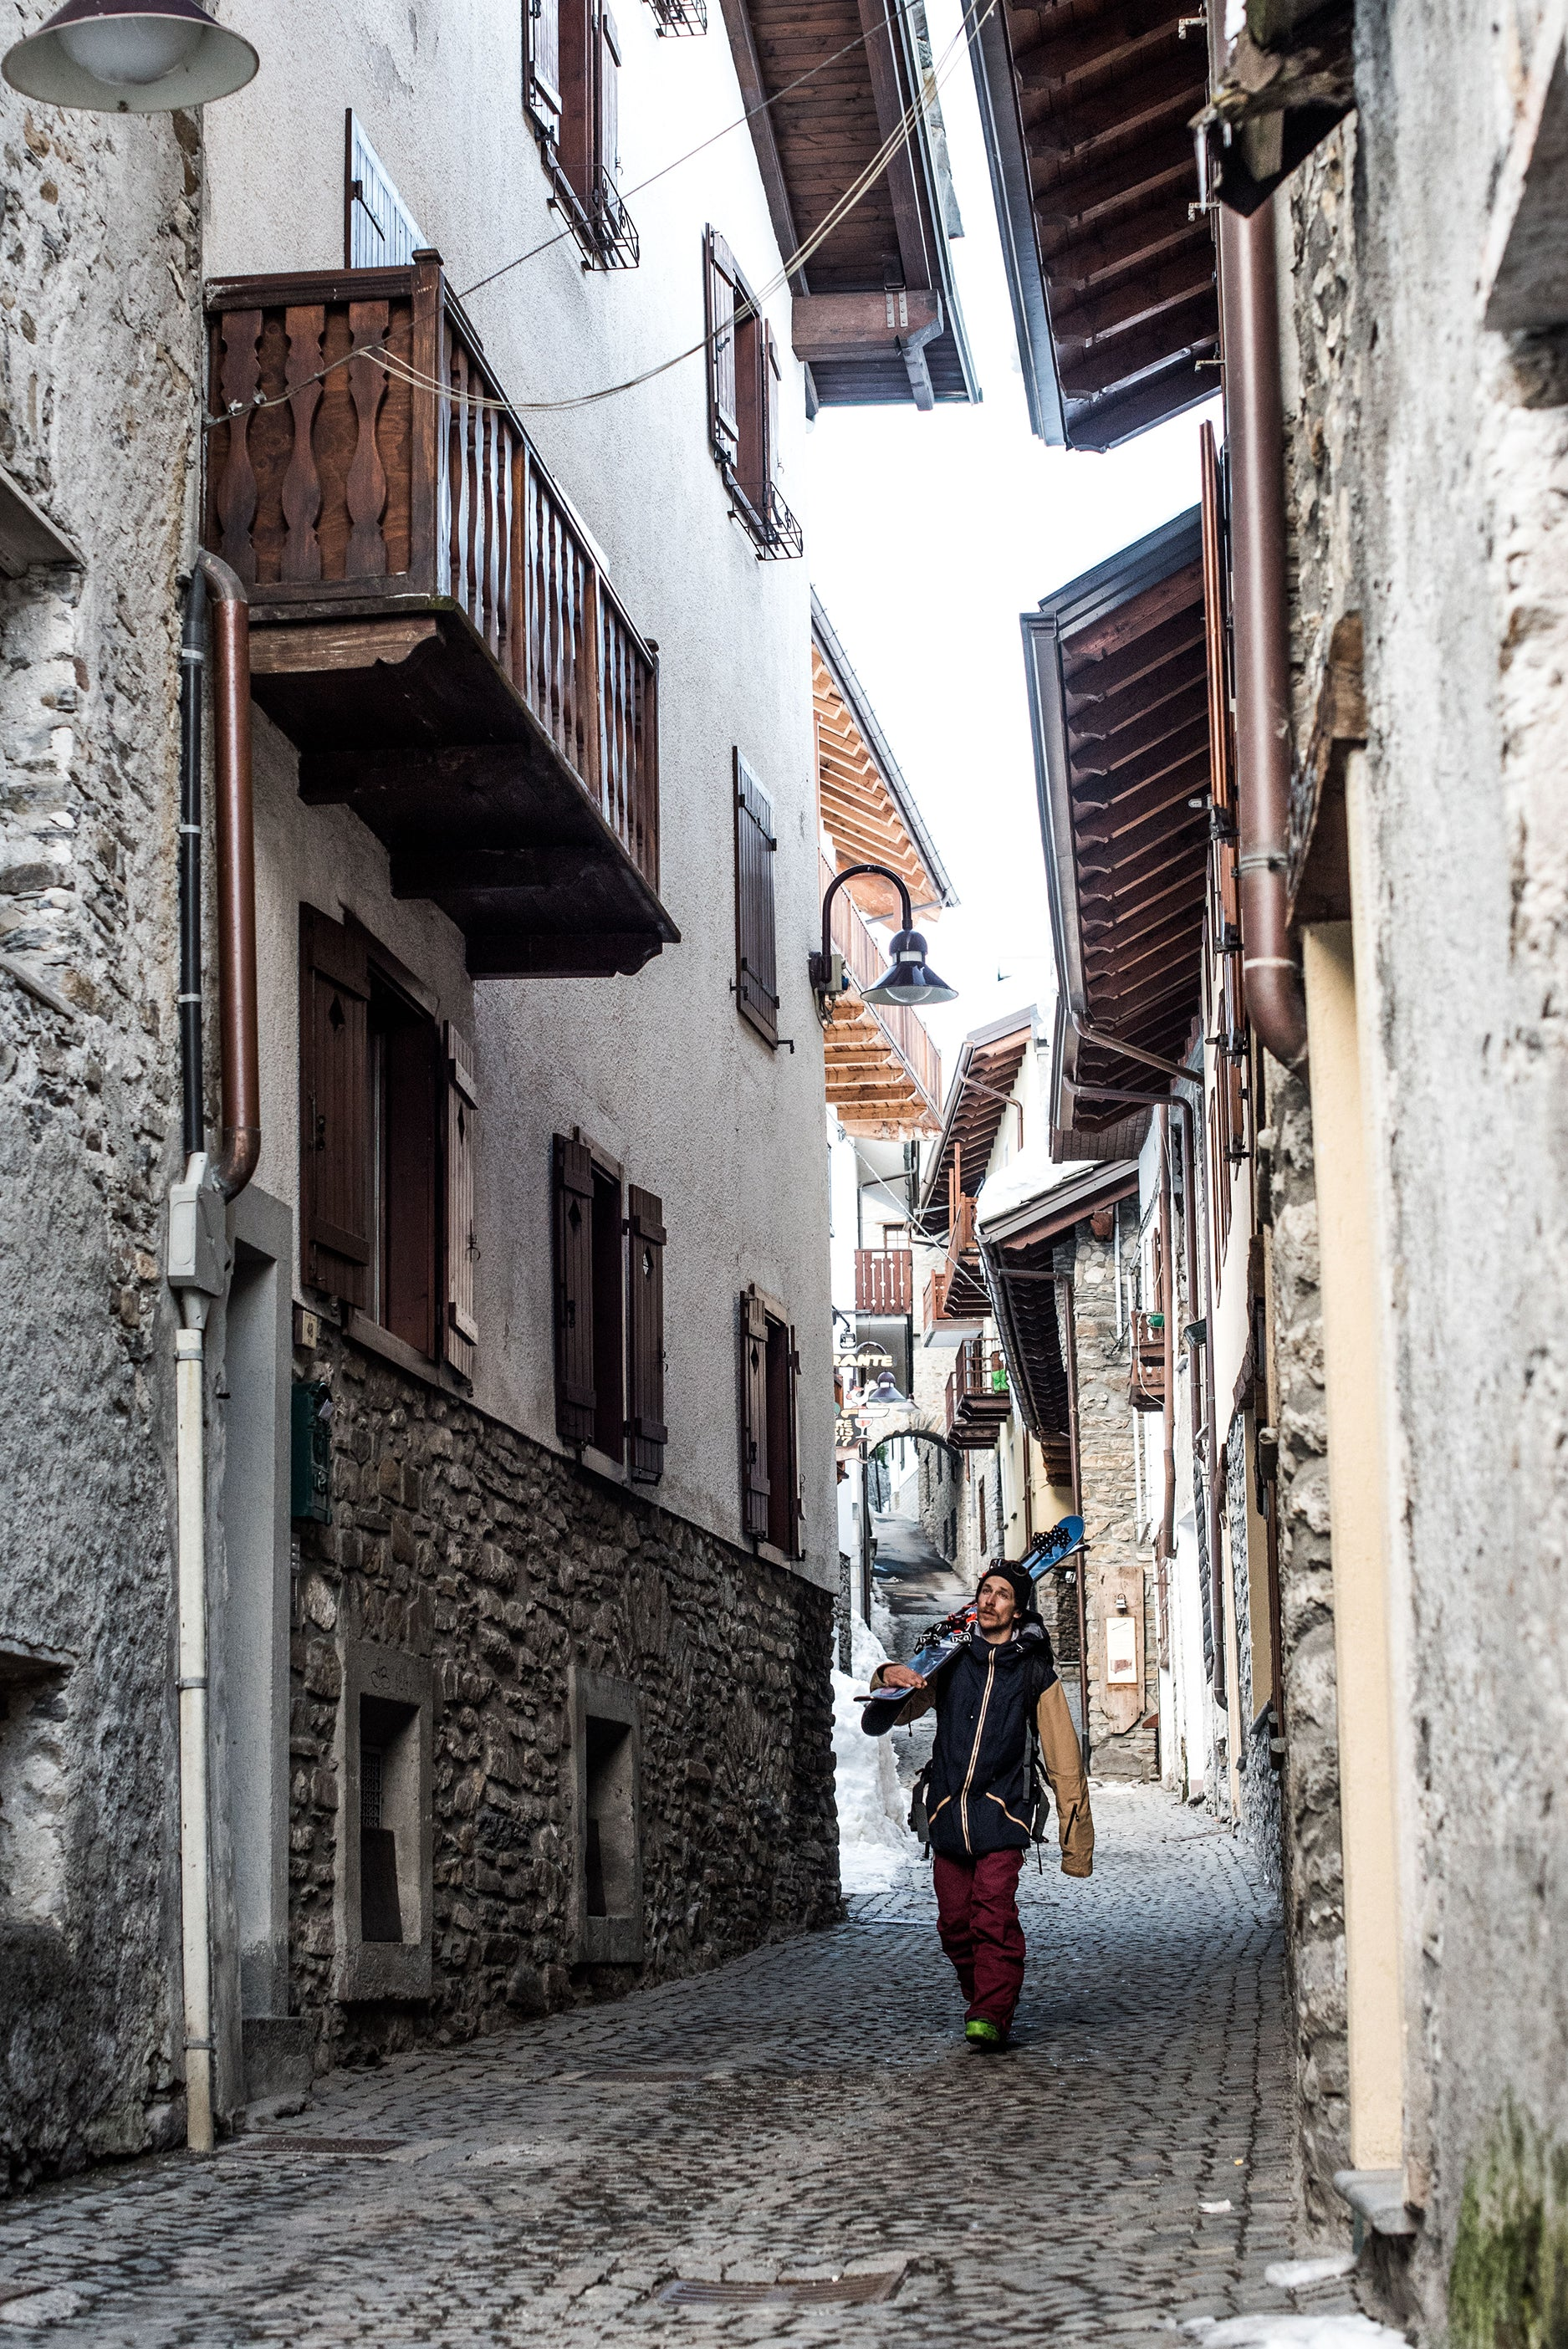 Skier walking over cobbled European streets